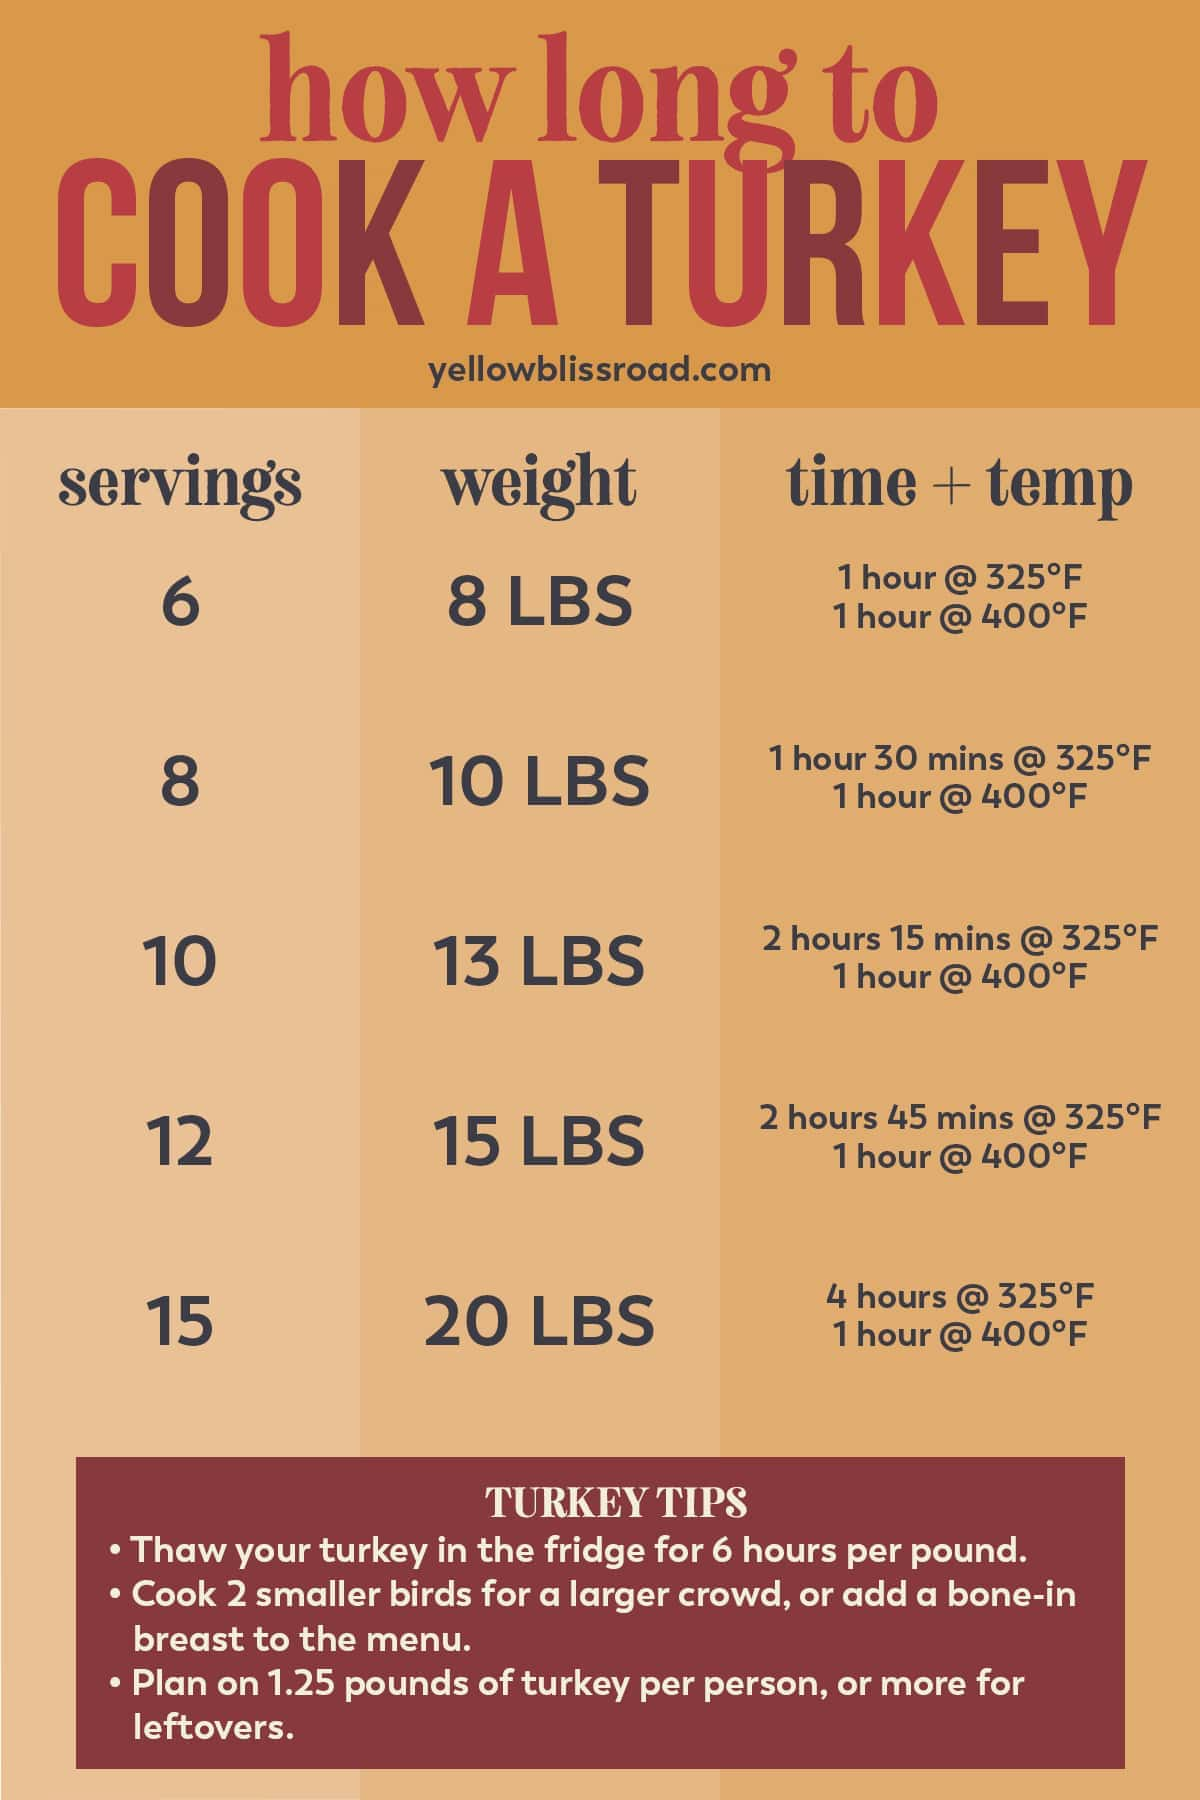 graphic showing how to cook a turkey with times, temps and how many servings